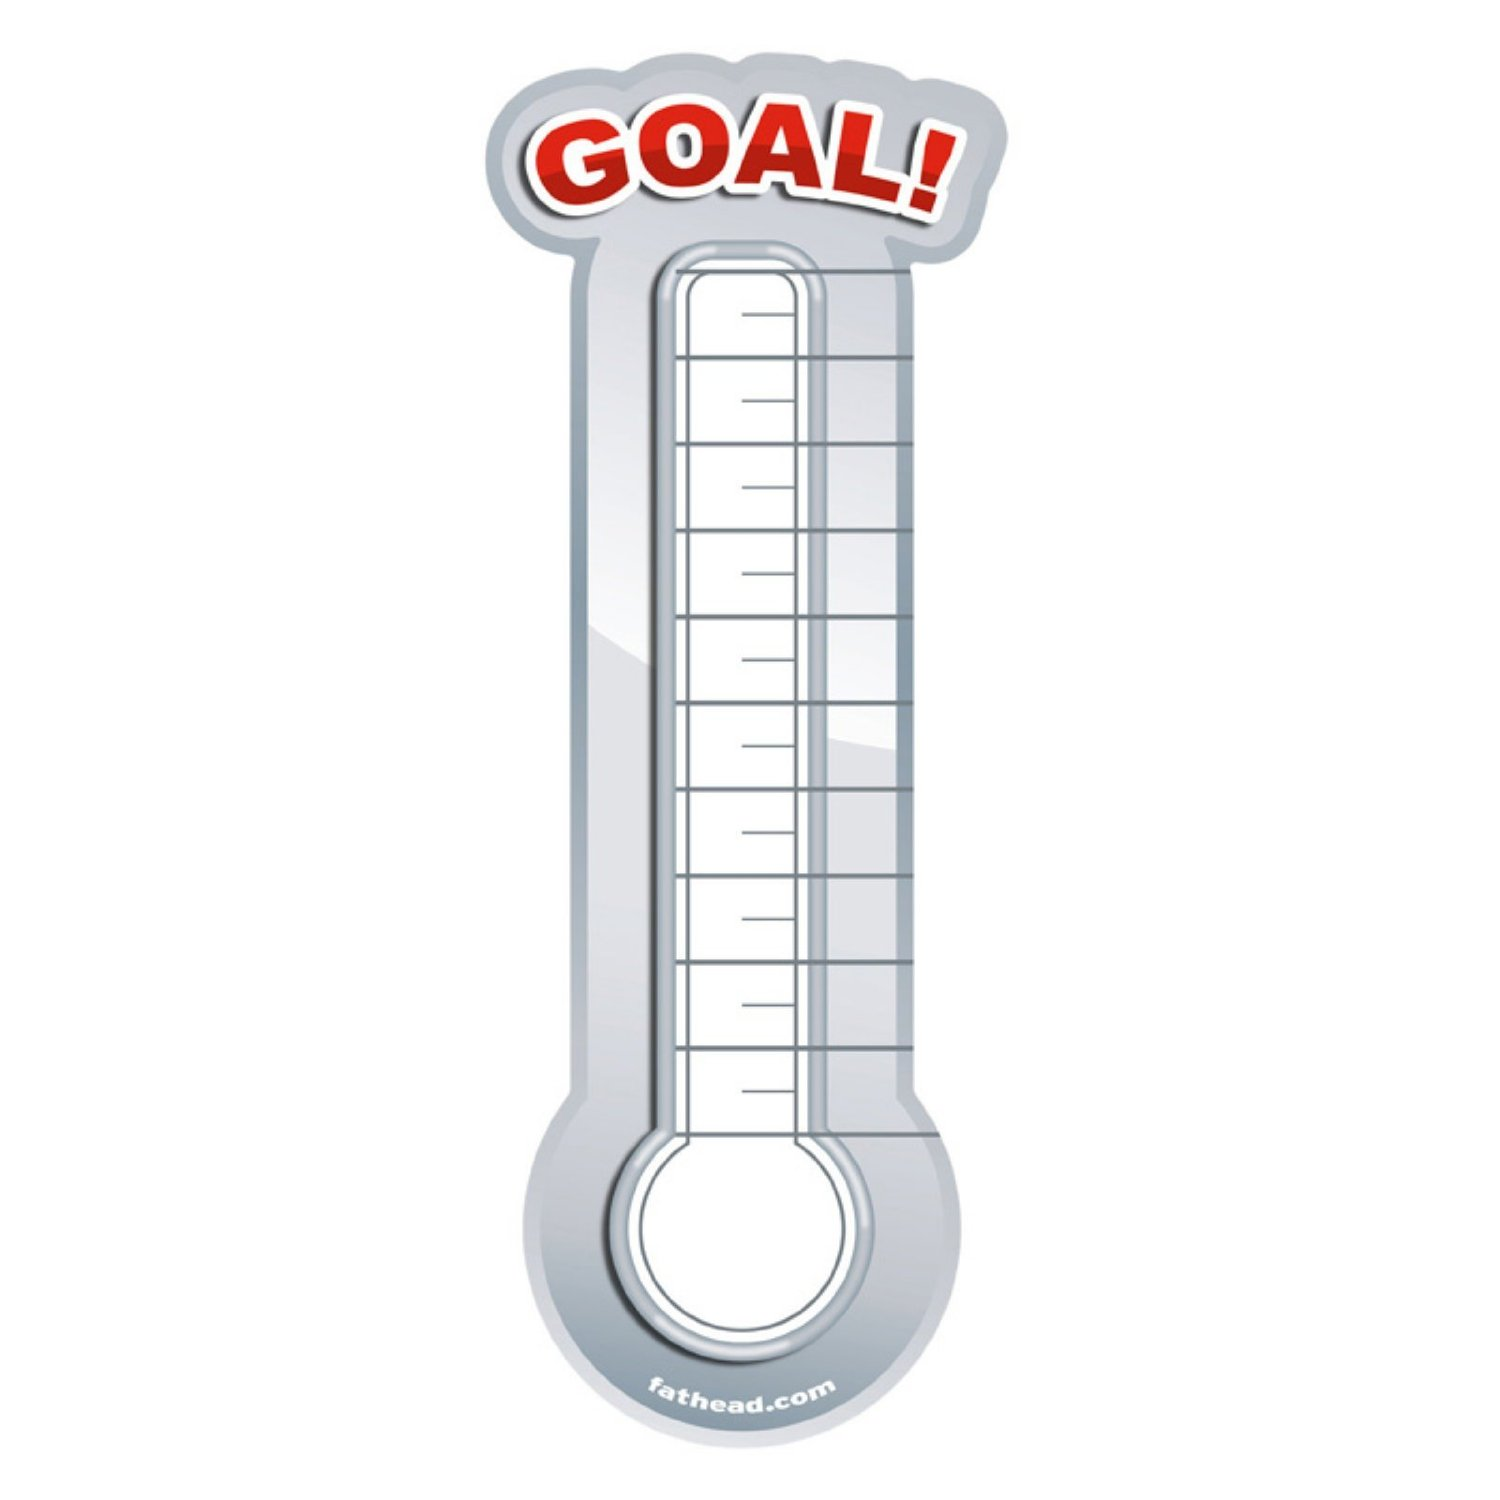 donation thermometer template - fundraising thermometer template playbestonlinegames